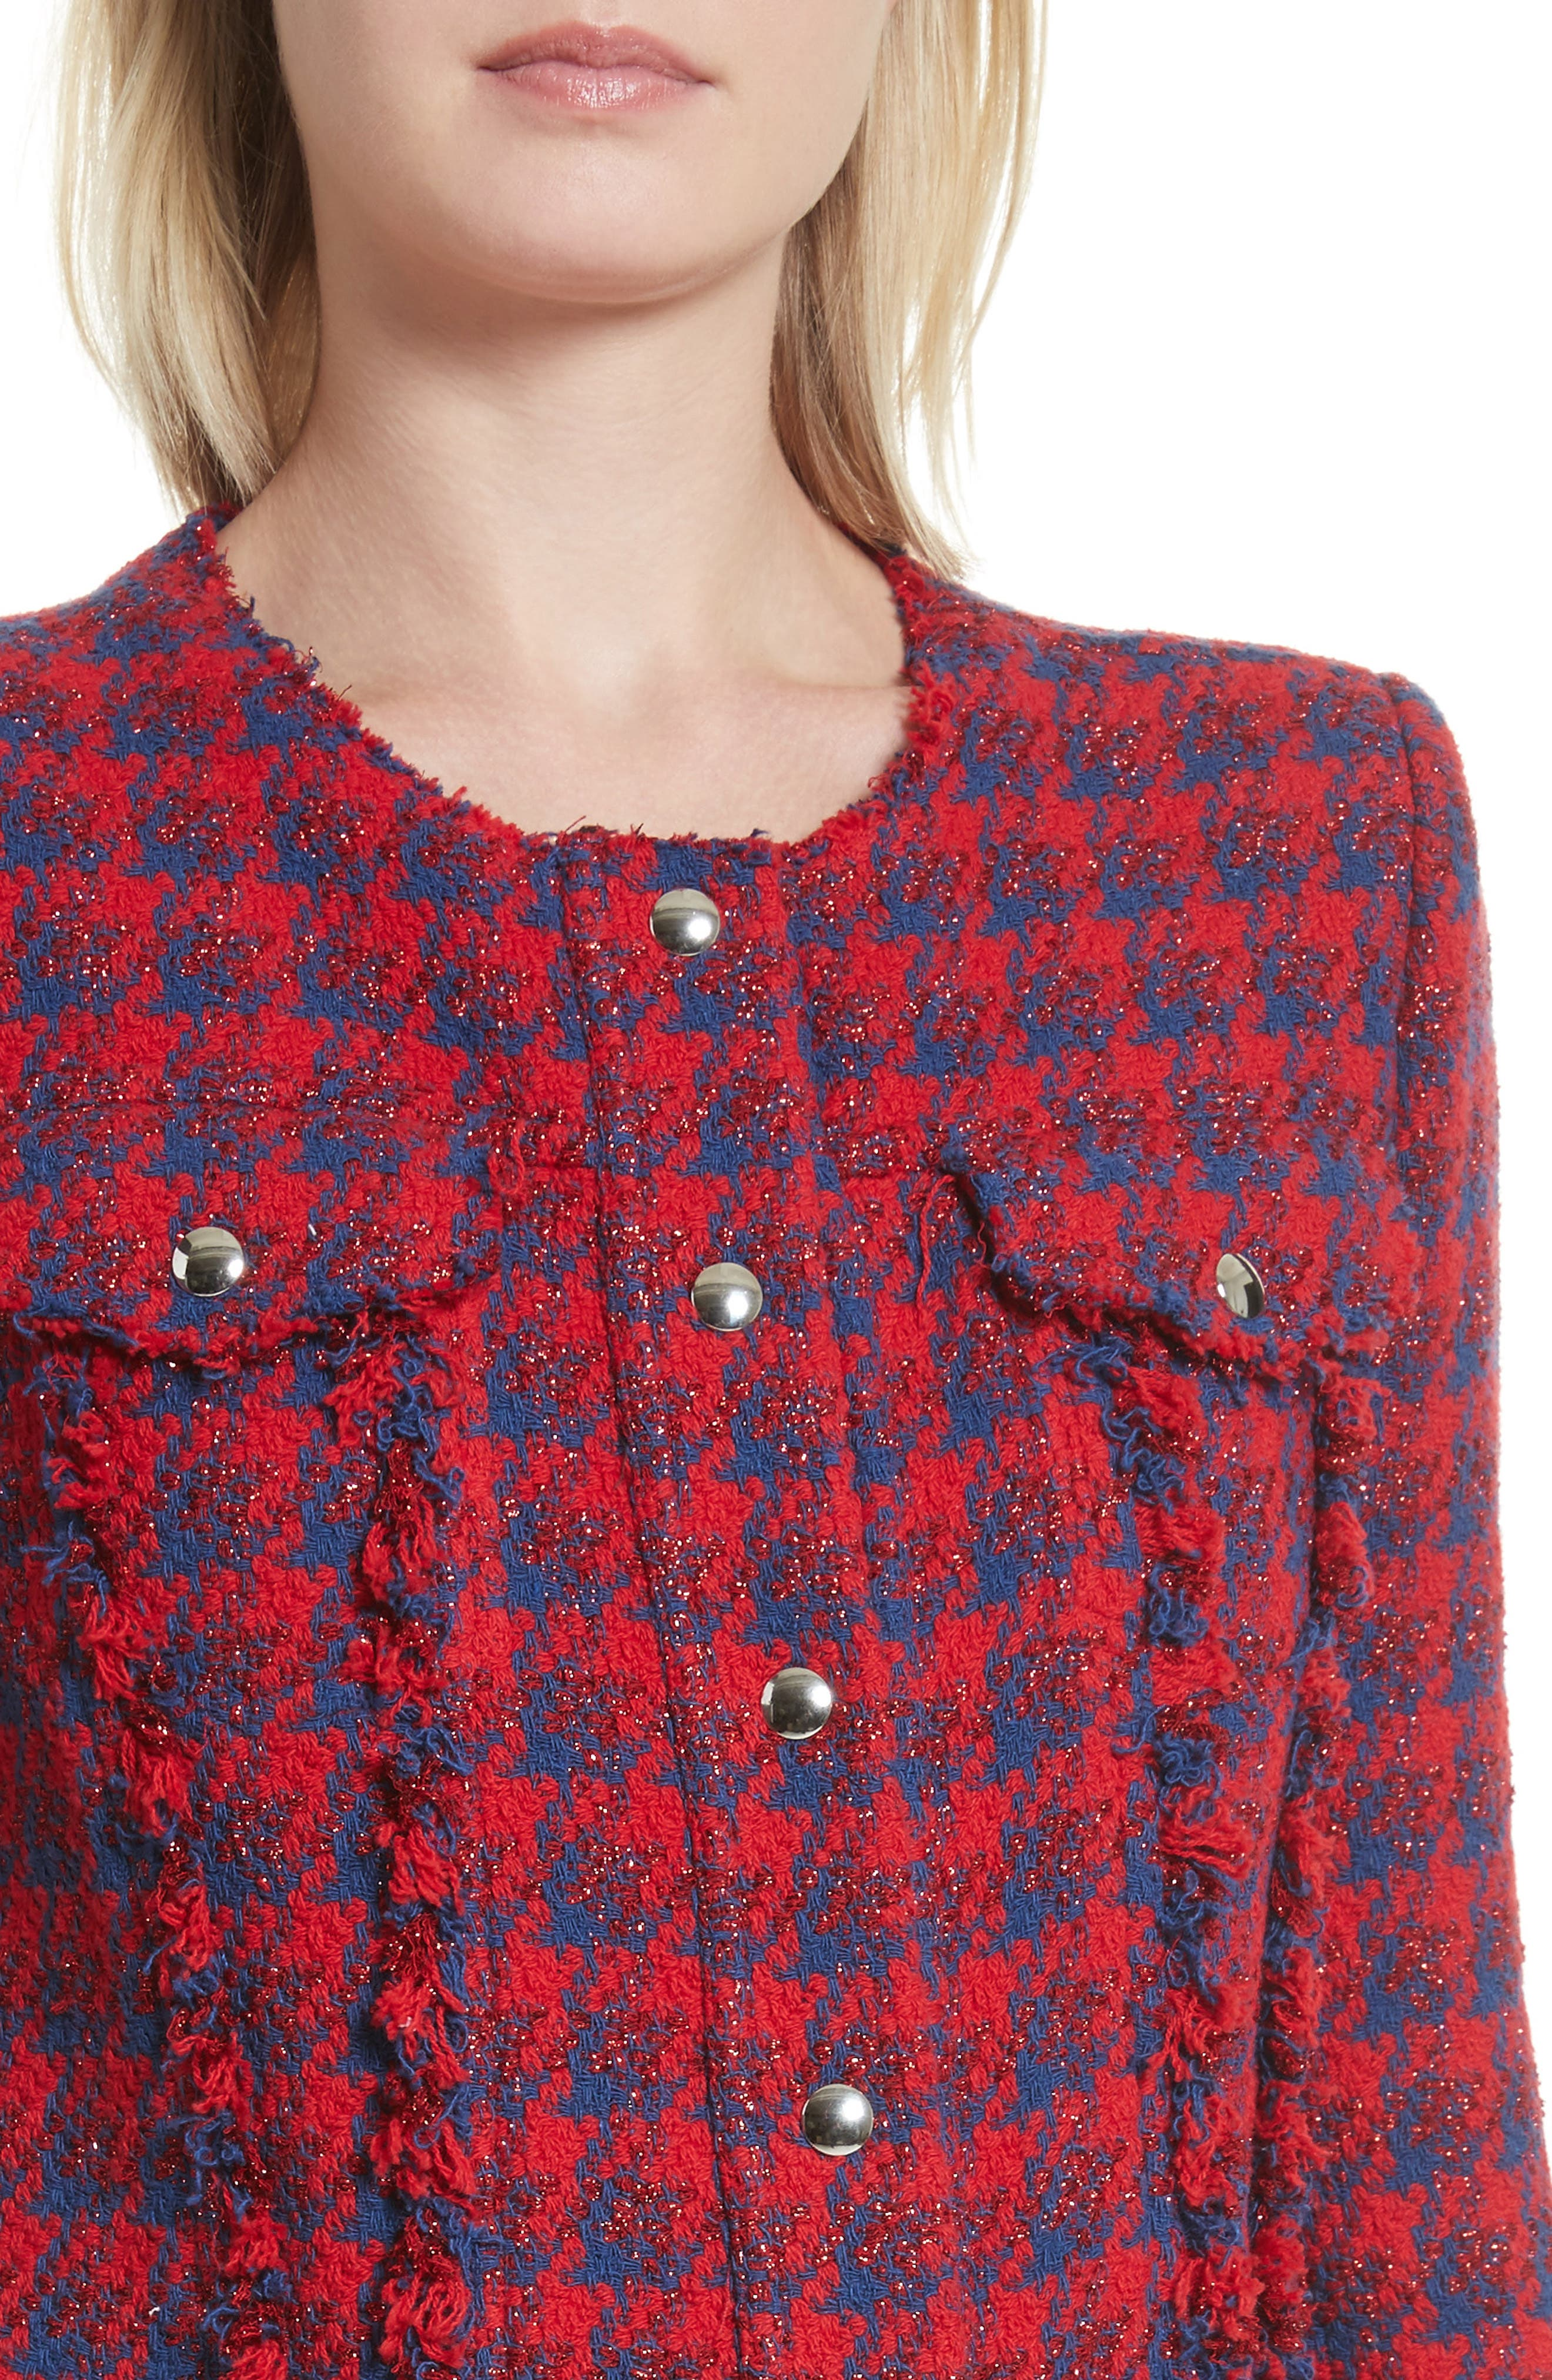 Quilombre Houndstooth Tweed Jacket,                             Alternate thumbnail 4, color,                             630